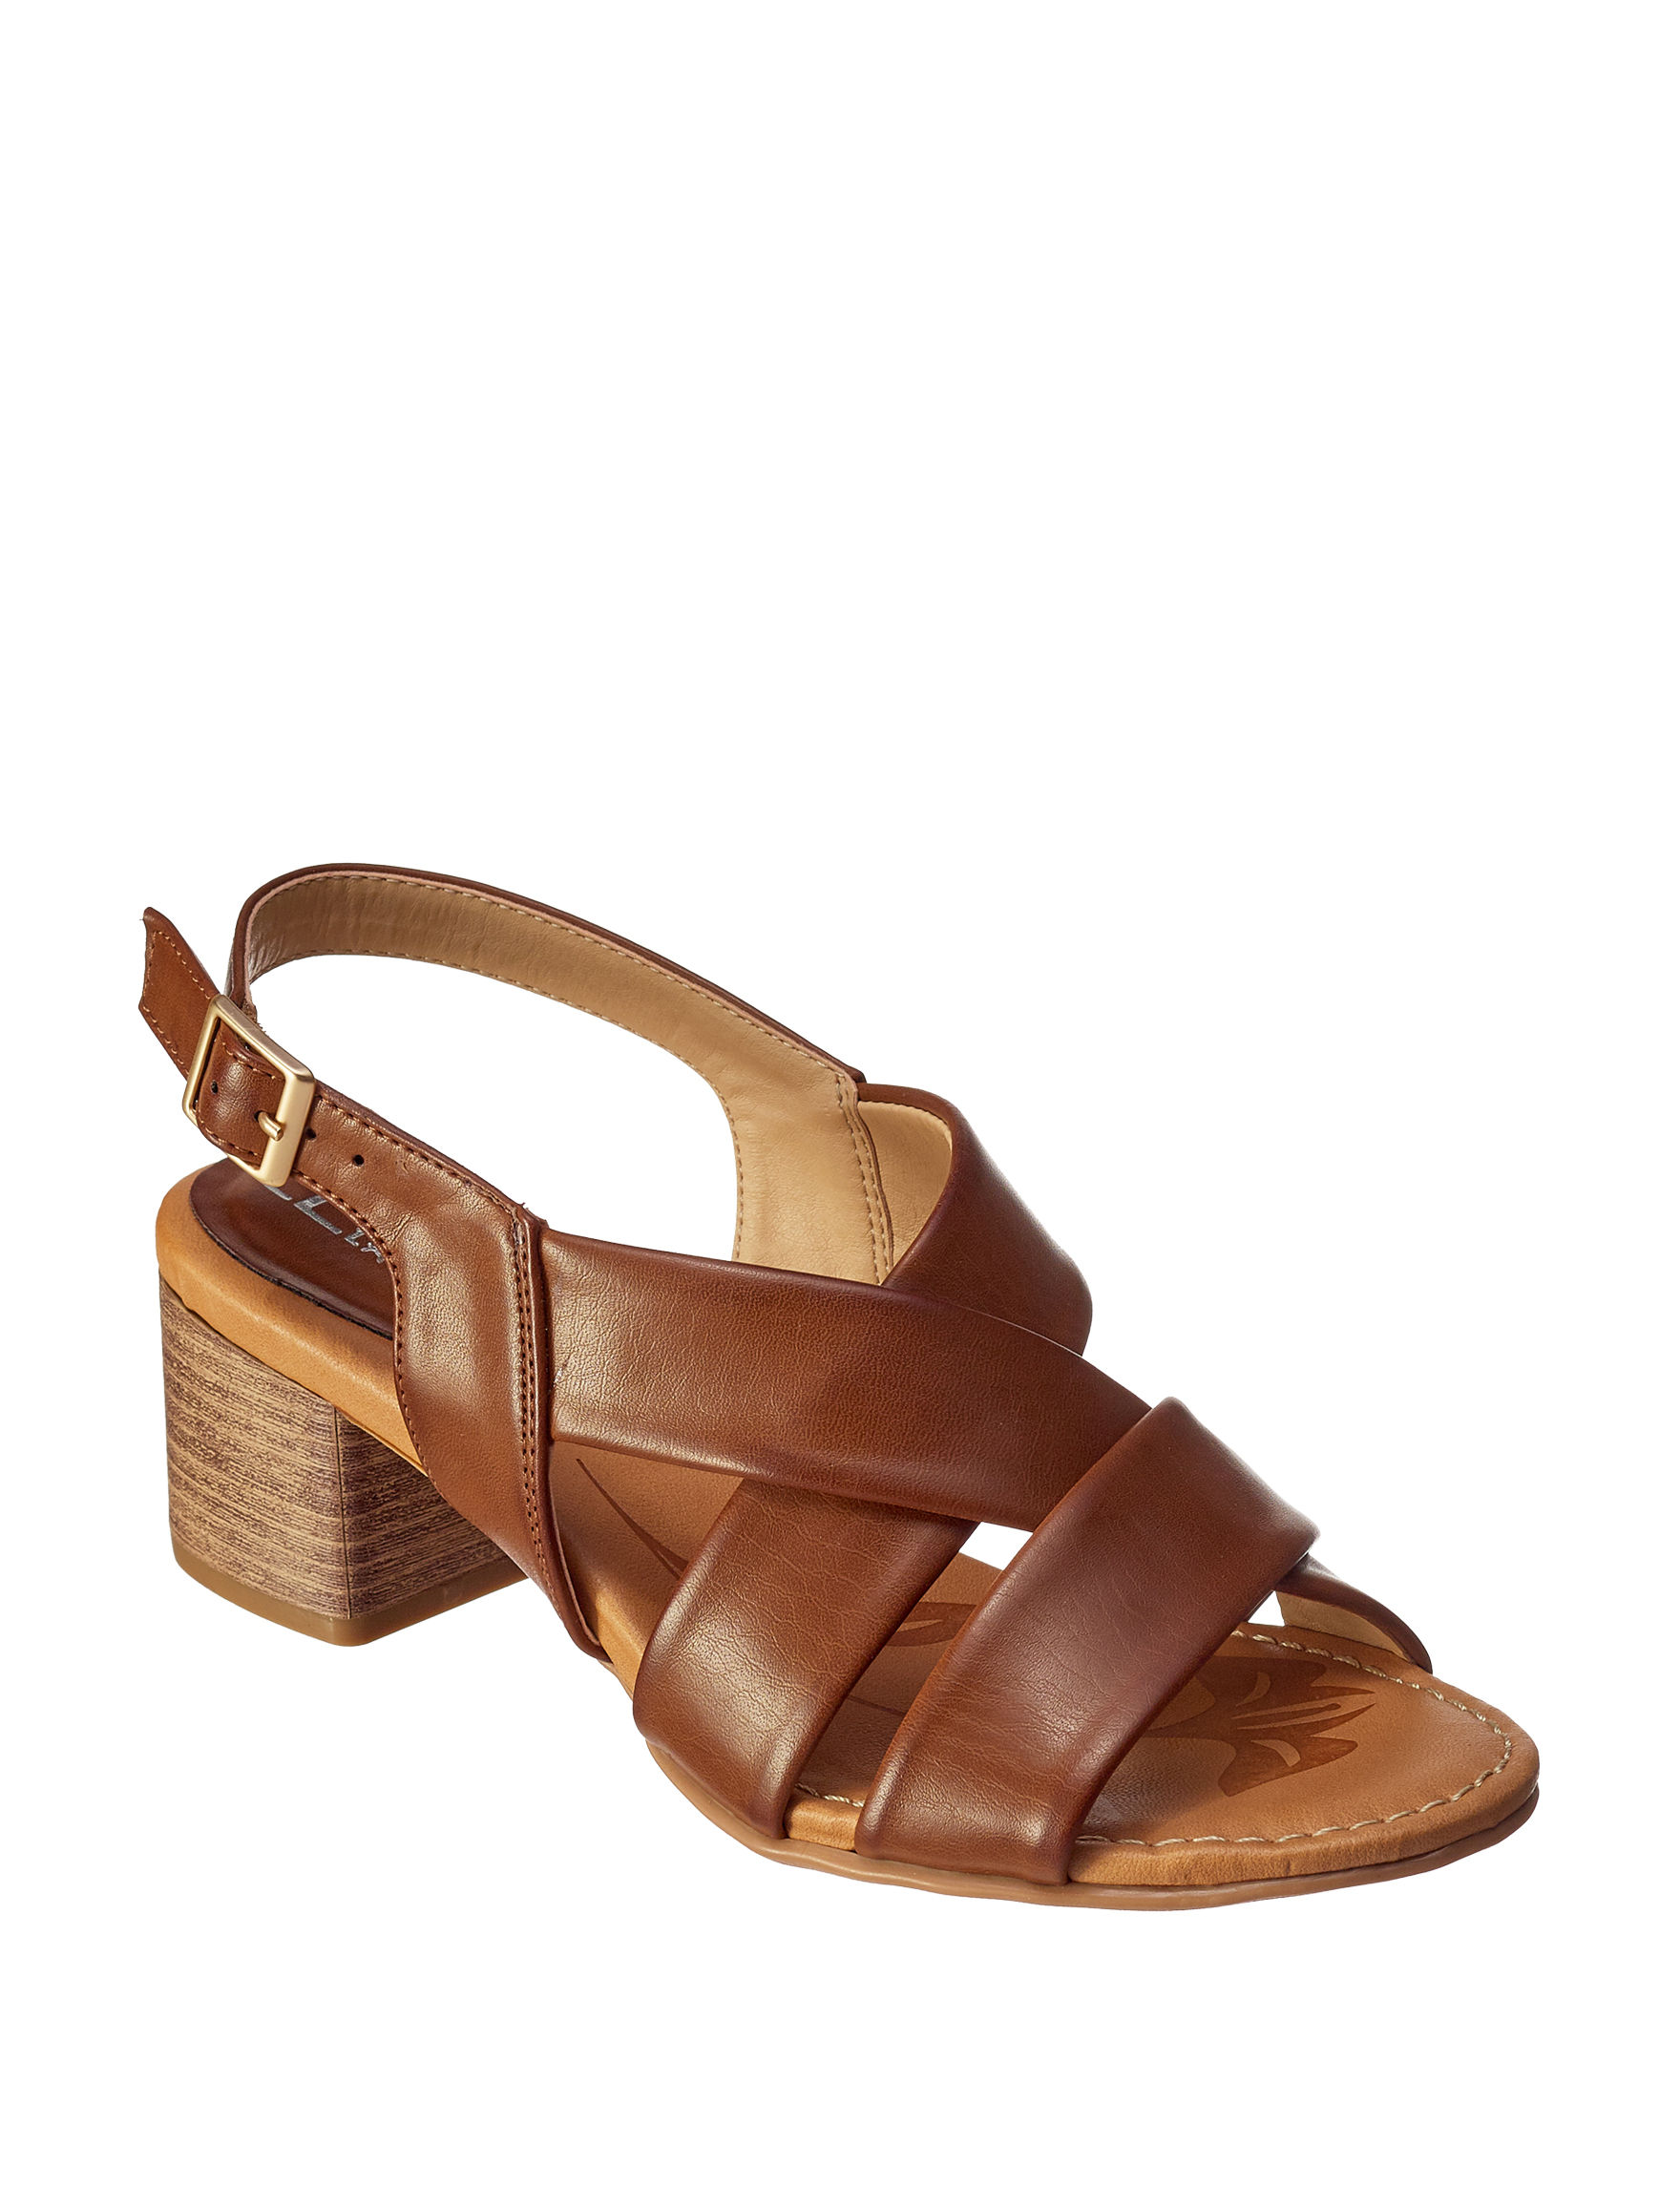 CL by Laundry Tan Heeled Sandals